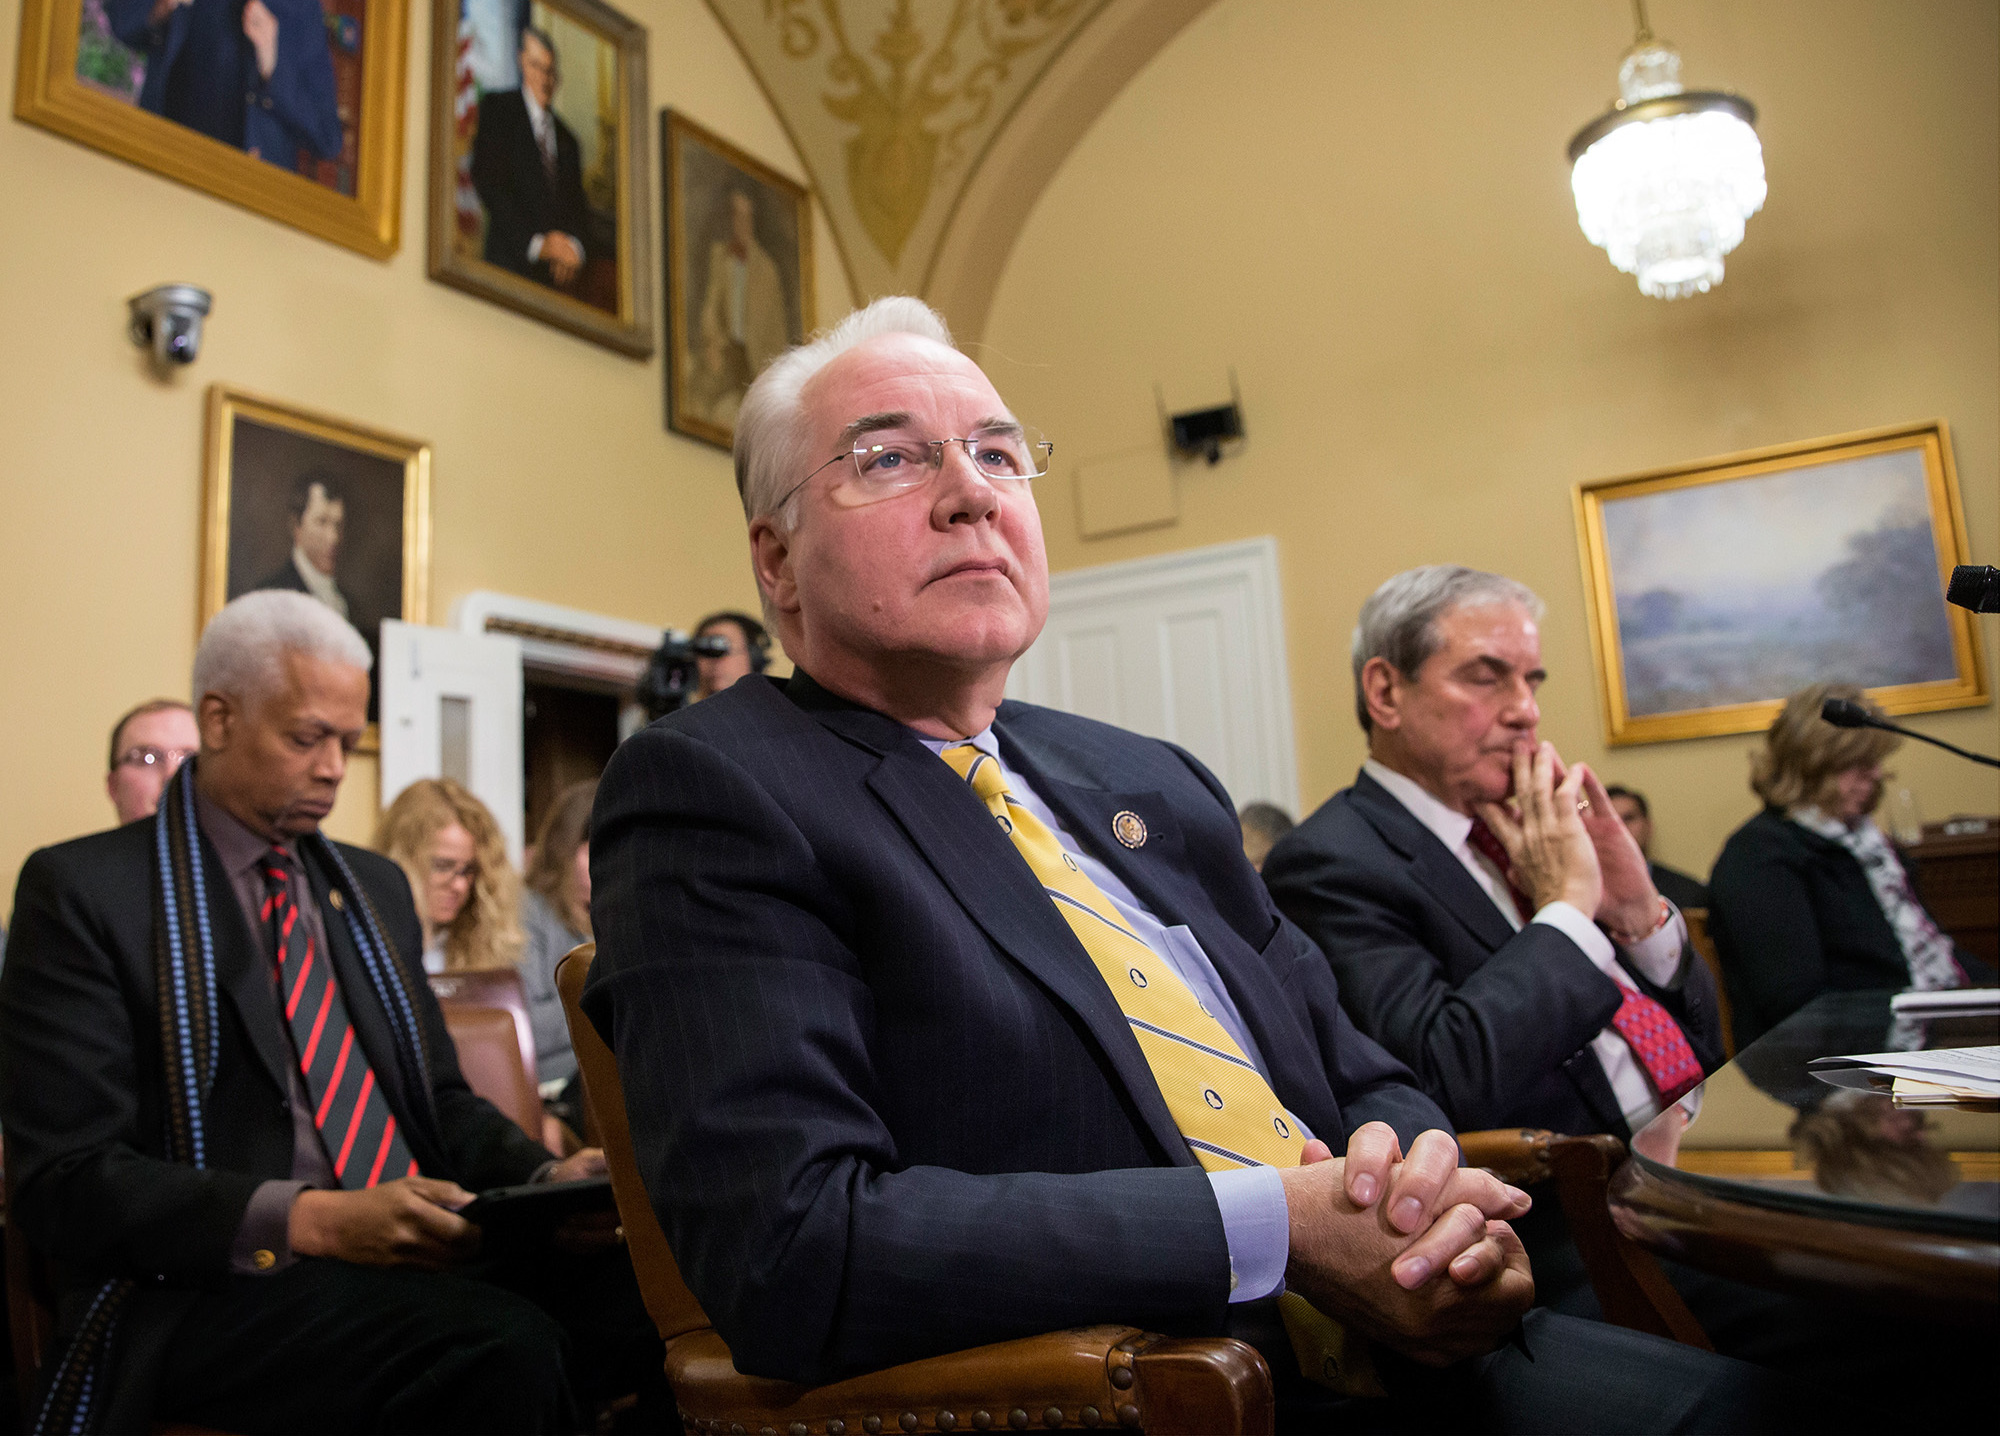 Trump Chooses Rep. Tom Price, An Obamacare Foe, To Run HHS